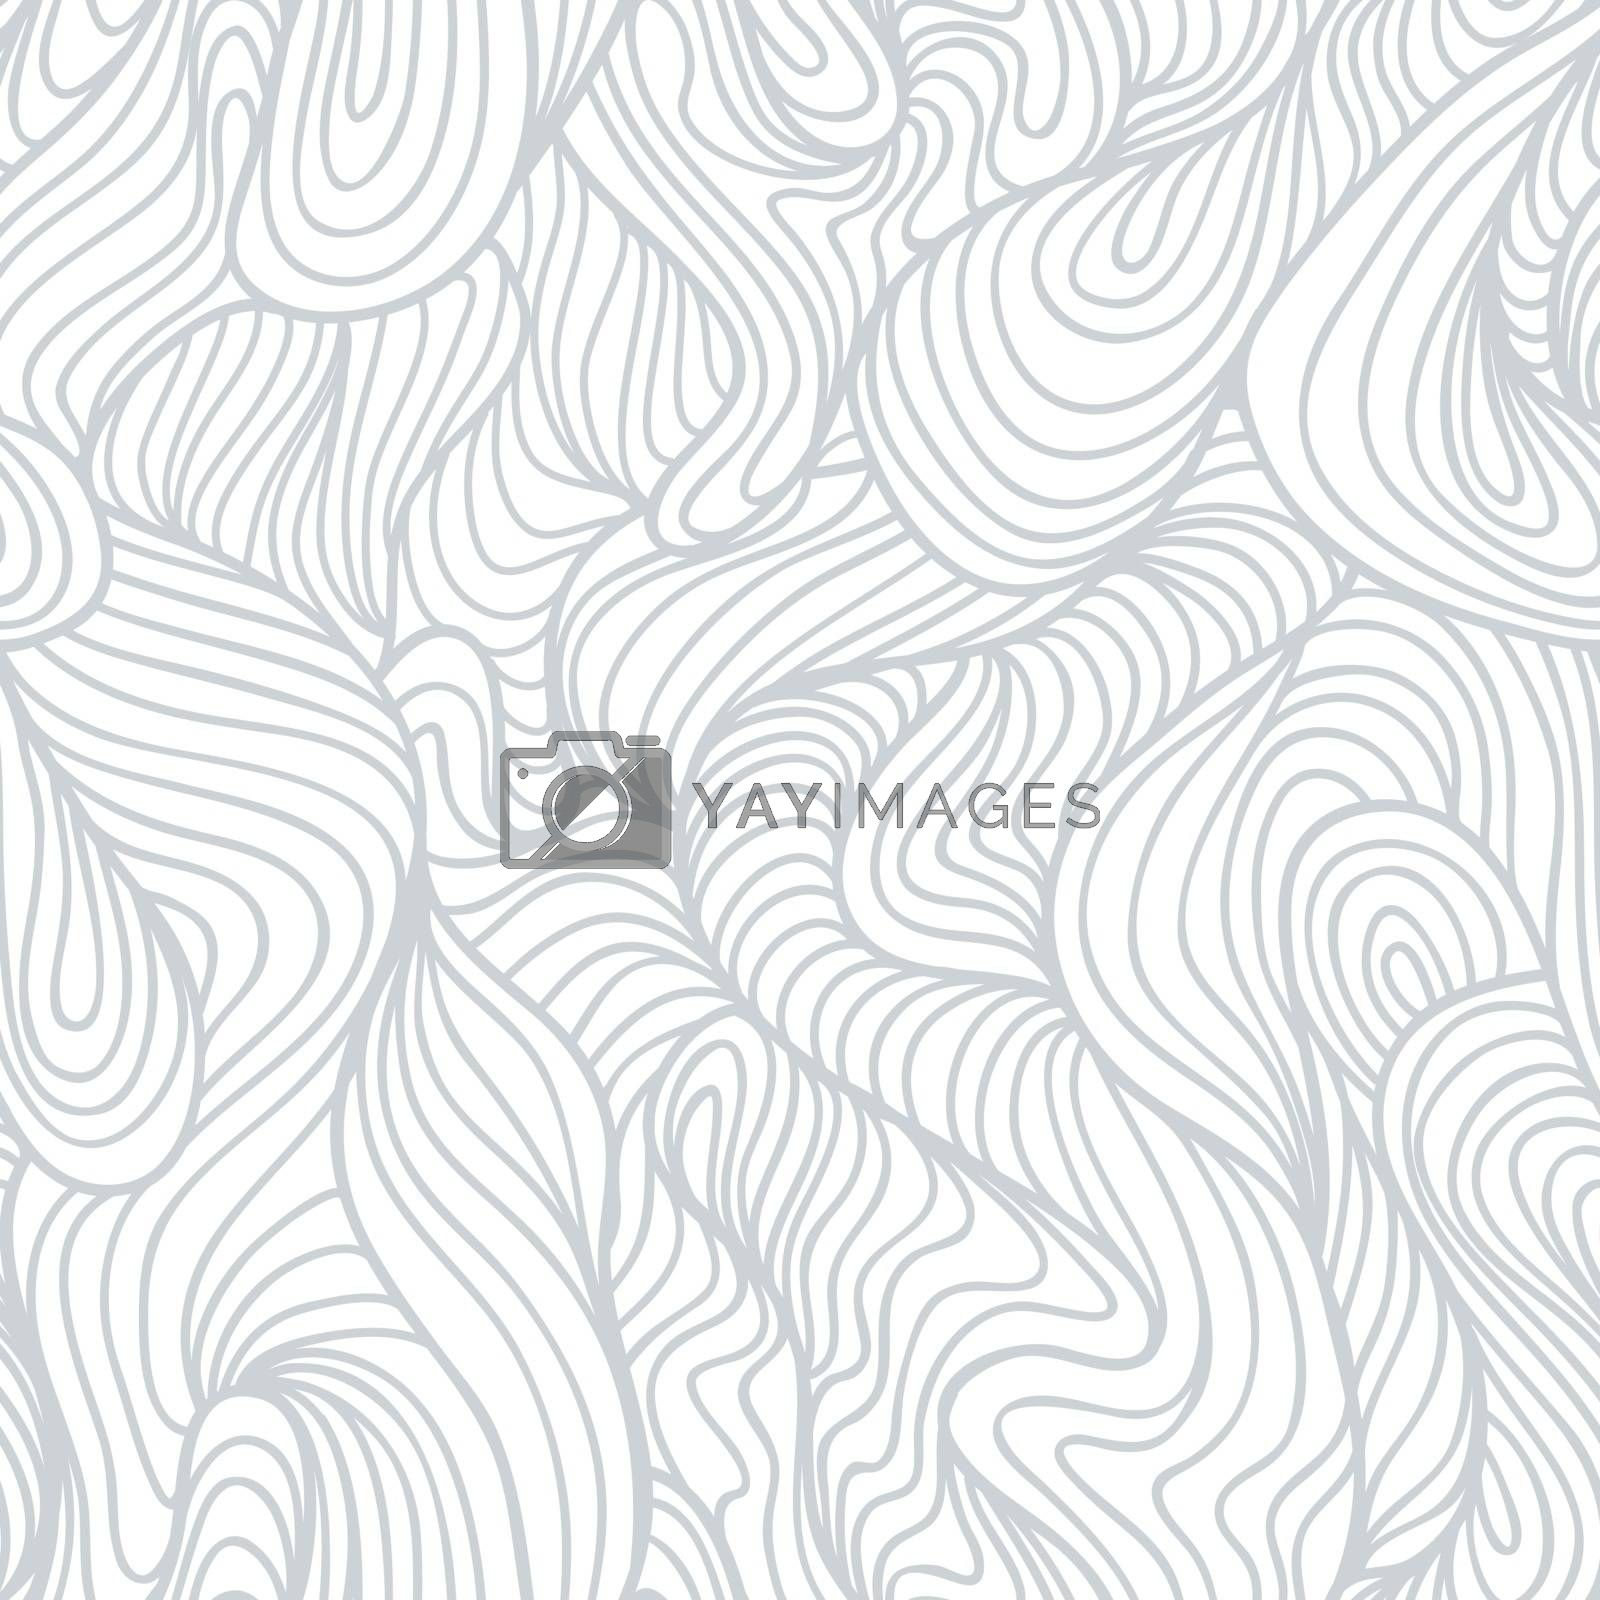 Royalty free image of Seamless abstract light hand drawn pattern, waves background by ESSL